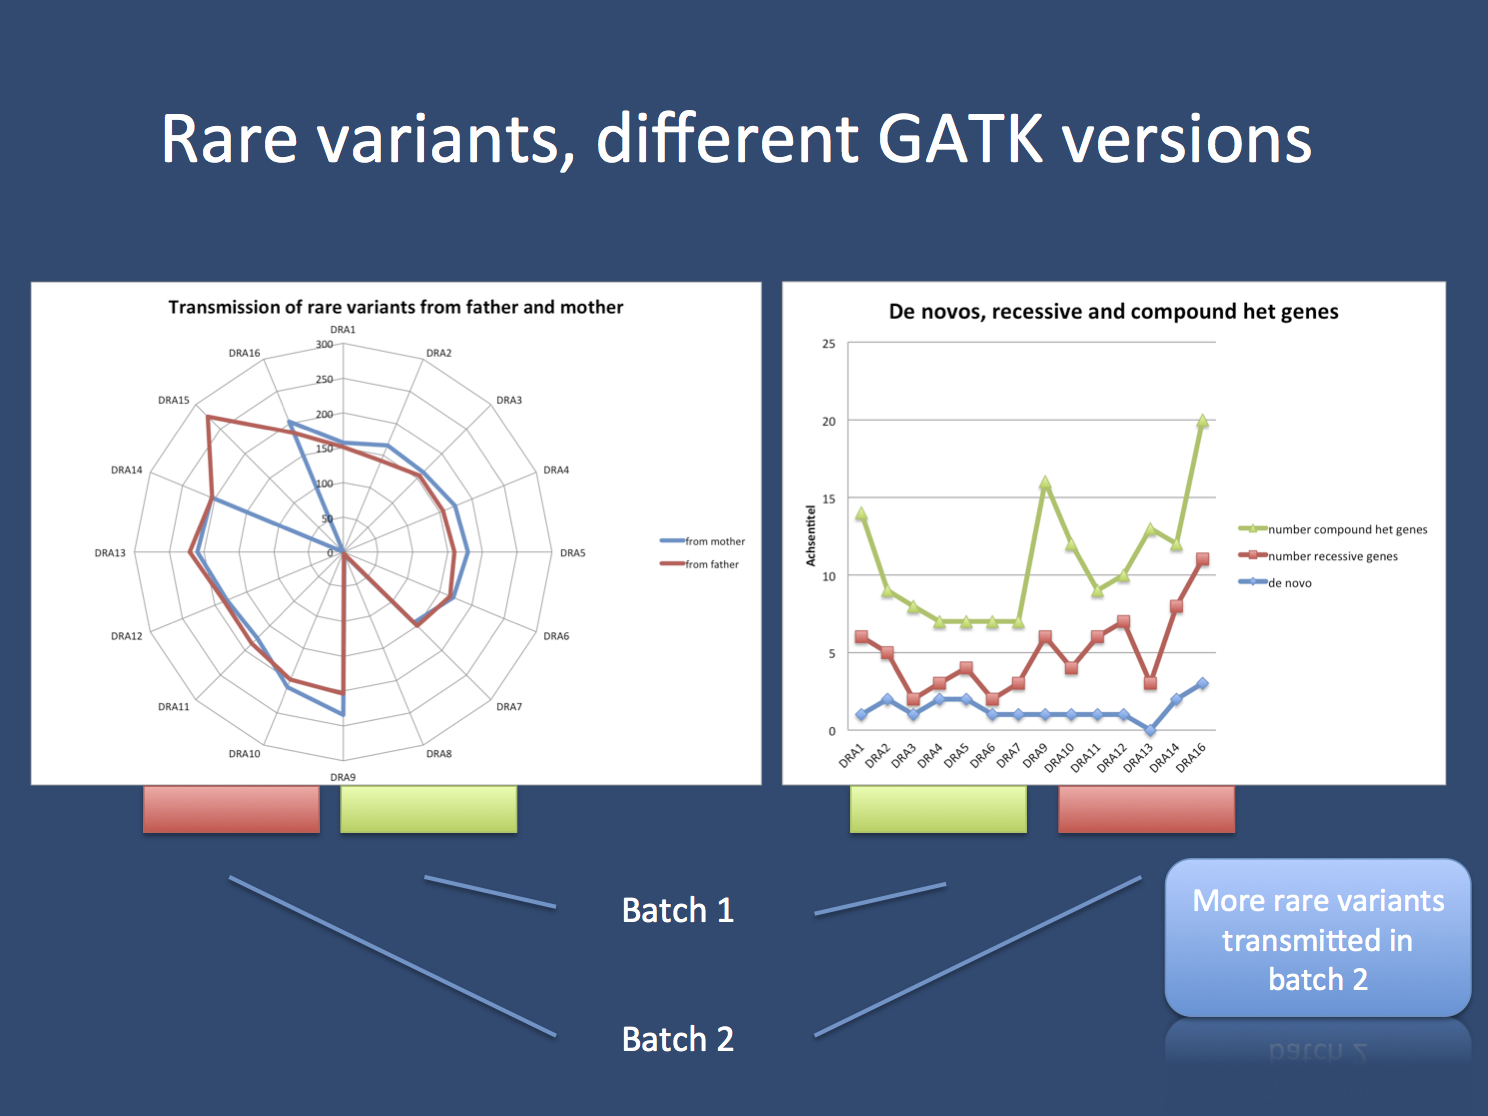 Rare variant analysis of trios with GATK using two different batches. Batch 2 show a larger number of rare variants transmitted from father and mother to the affected child. This difference between batches is probably due to a small change in the reference genome that has been used for variant calling.